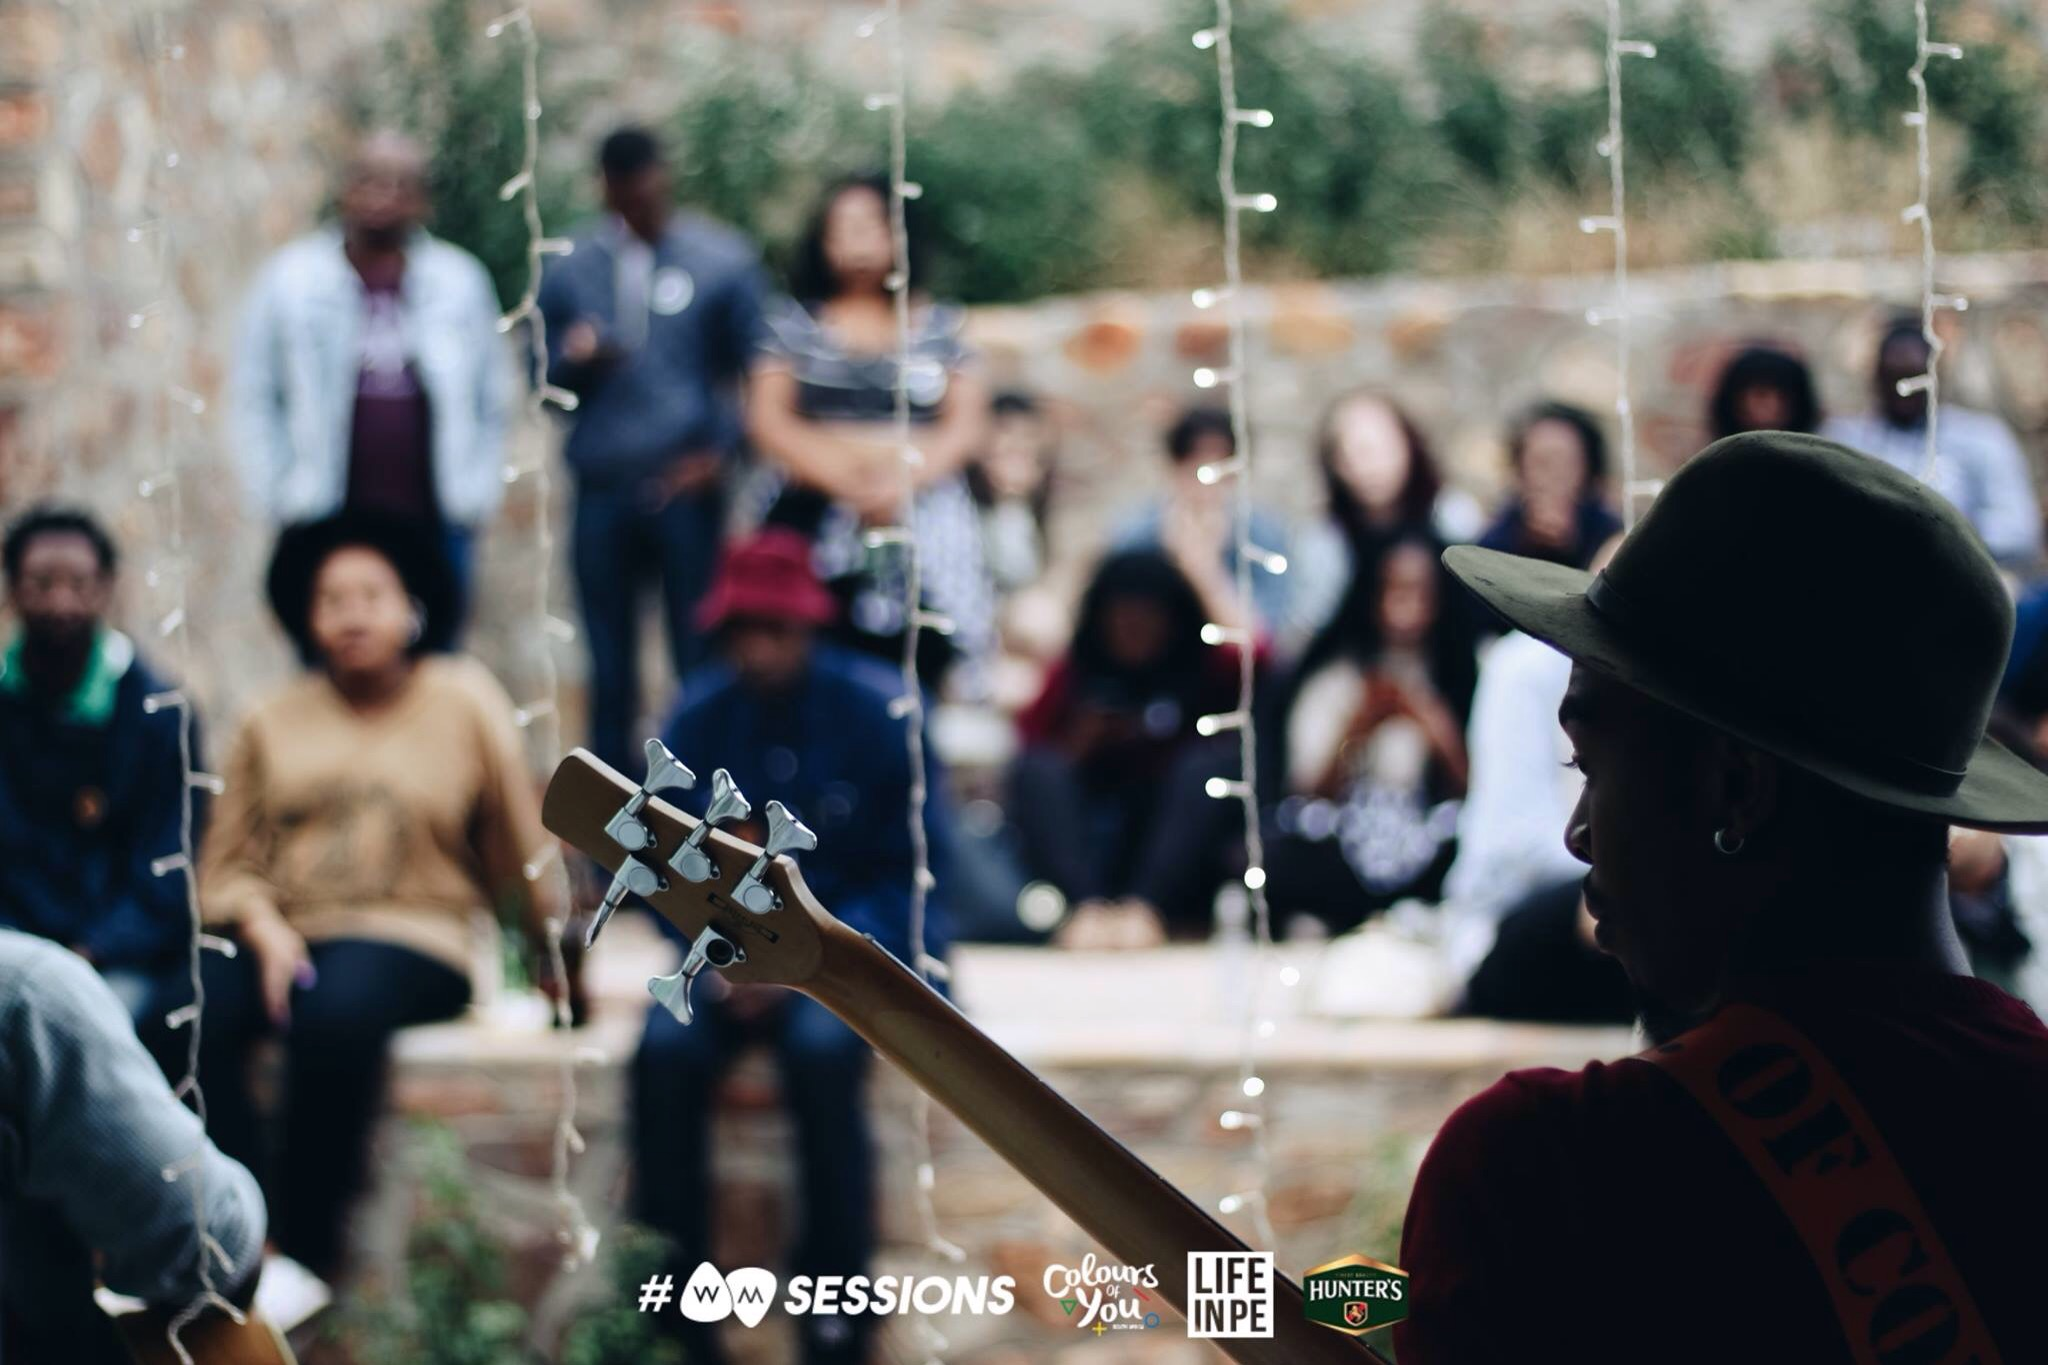 fd1dc6357085 ... for an exclusive live acoustic session from Wandile Mbambeni and a mini  exhibition by Colours of You SA in what was the 6th episode of  WMsessions.